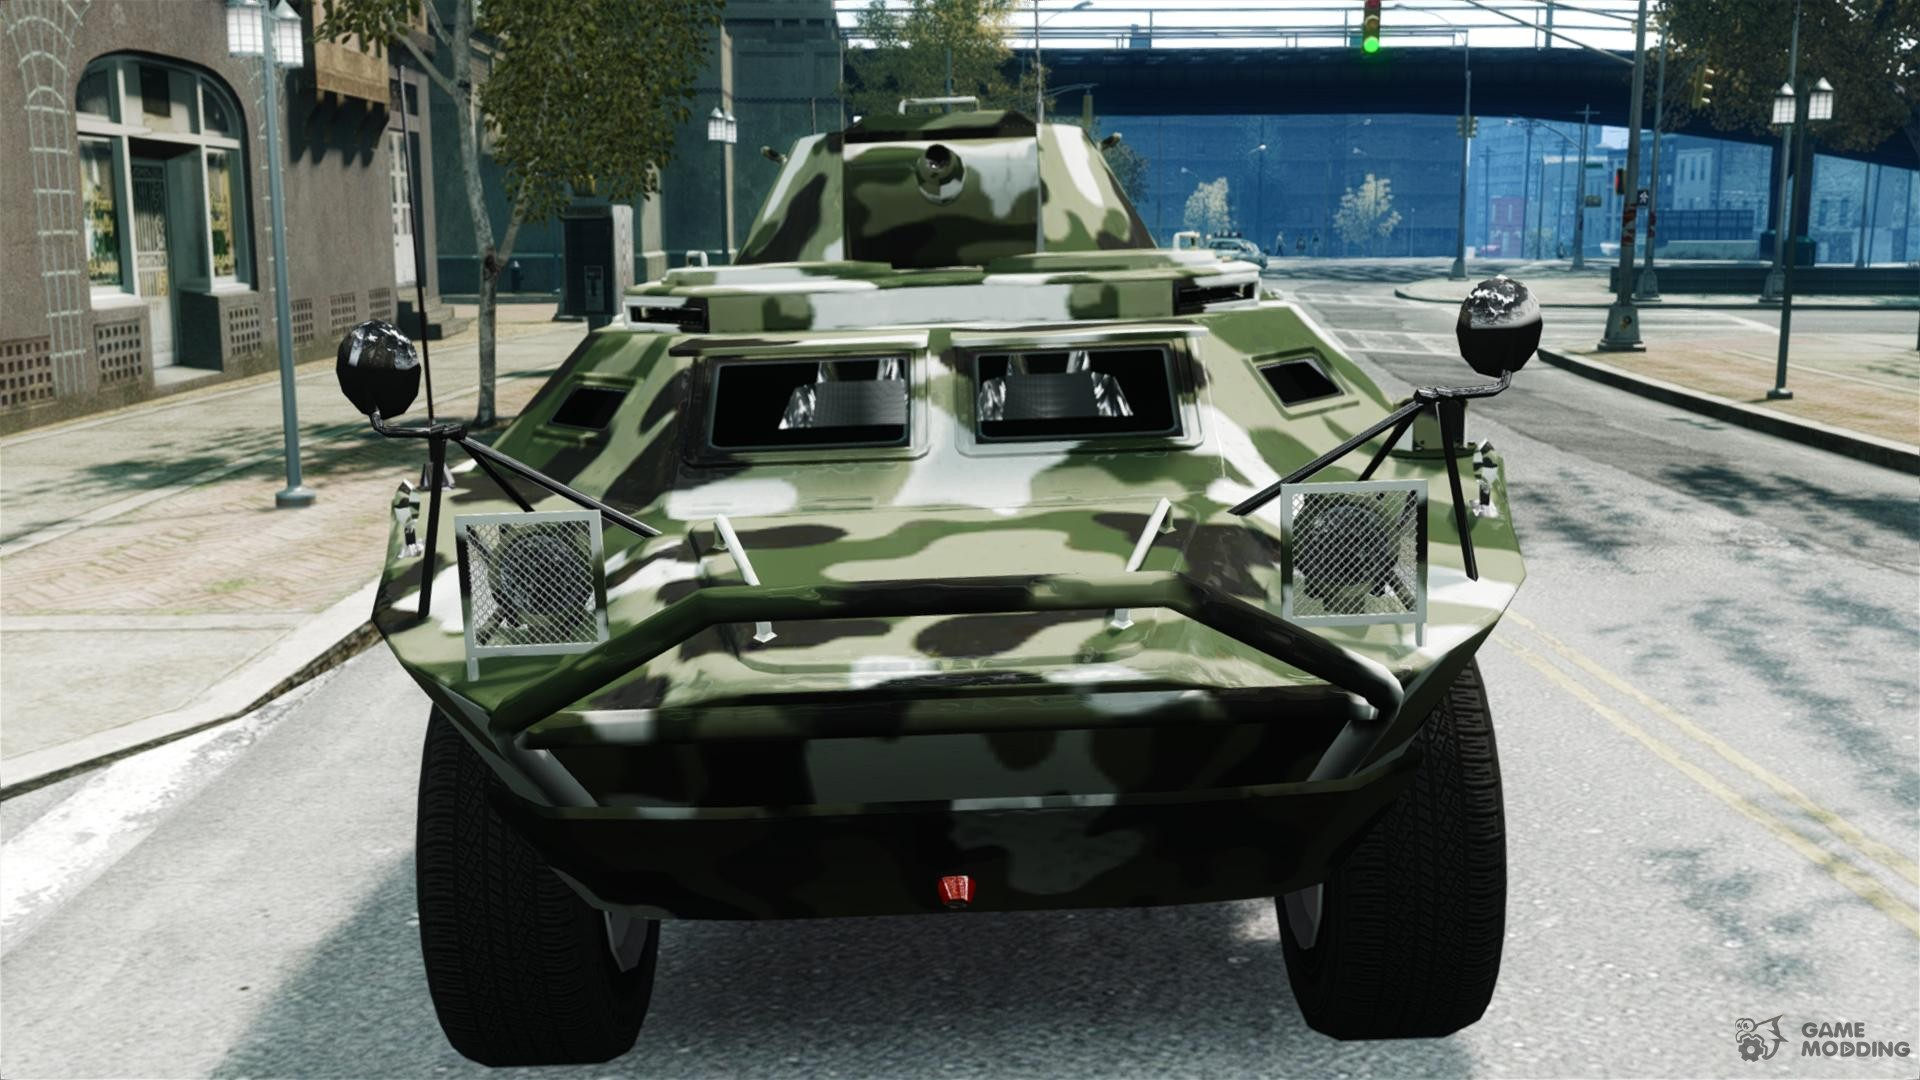 Canadian Armed Forces LAV III [GTA TBoGT APC Mod, 1080p] - YouTube